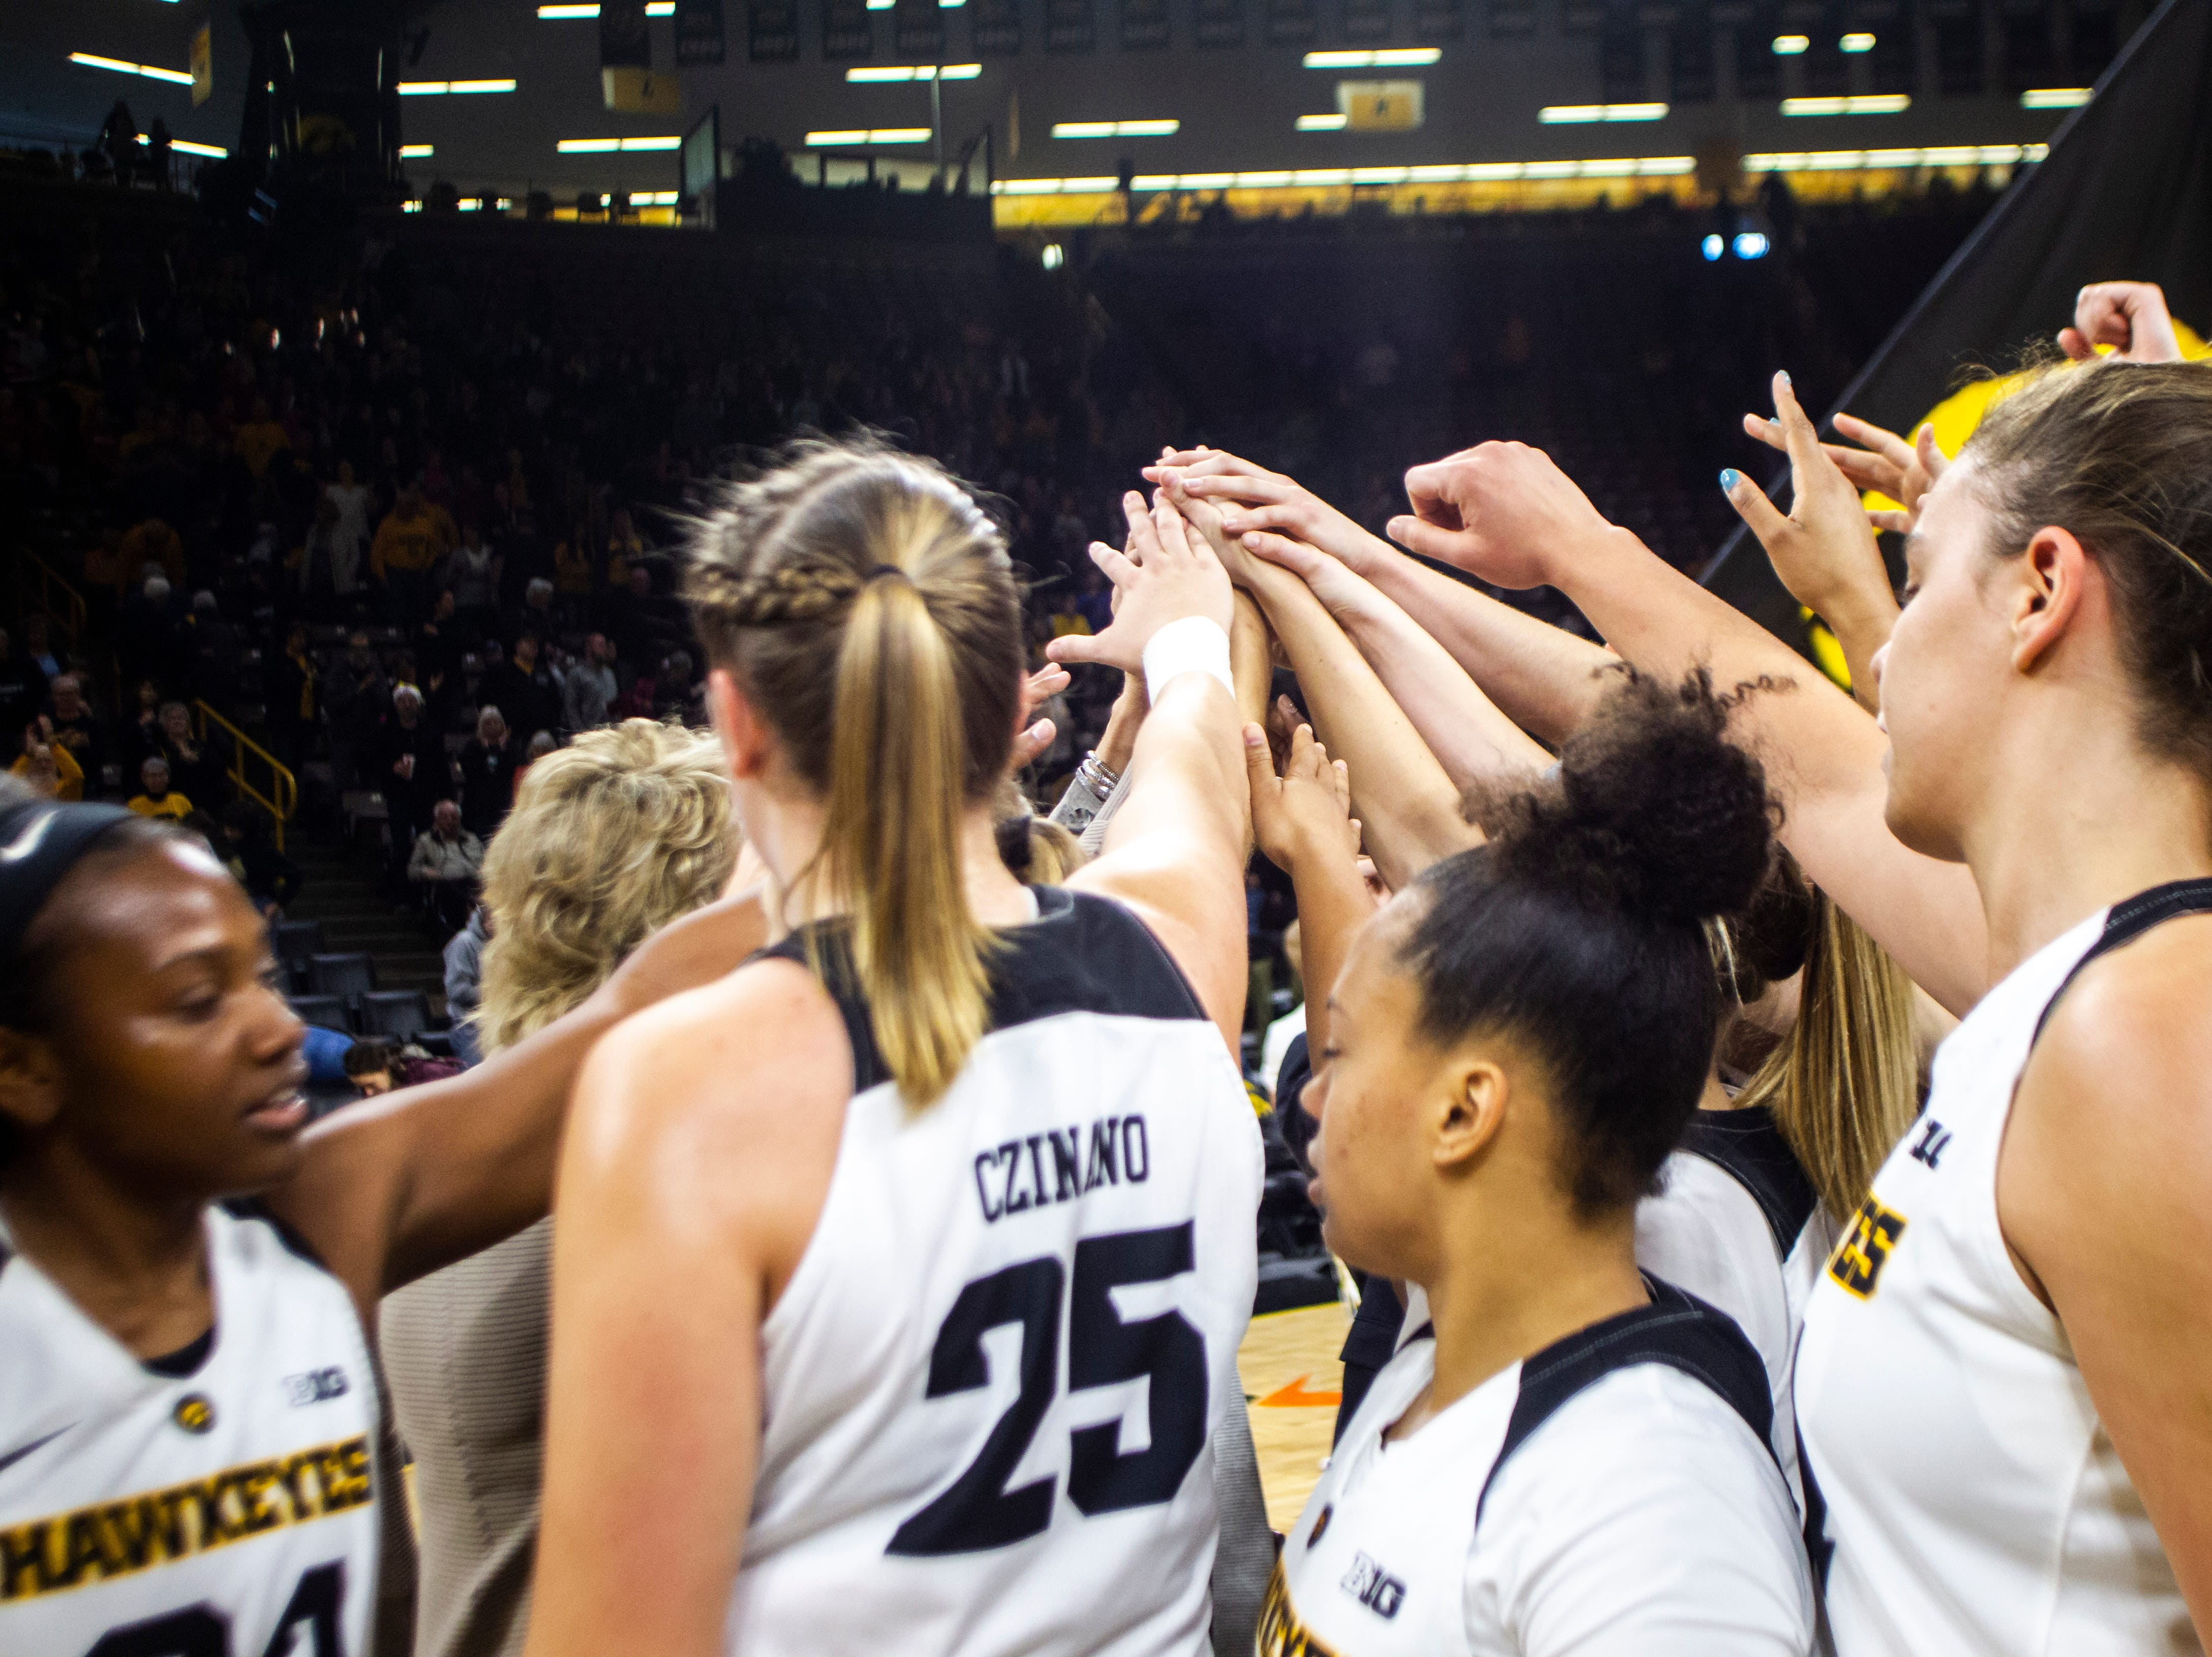 Iowa Hawkeyes players huddle after a NCAA women's basketball game on Sunday, Dec. 16, 2018, at Carver-Hawkeye Arena in Iowa City.